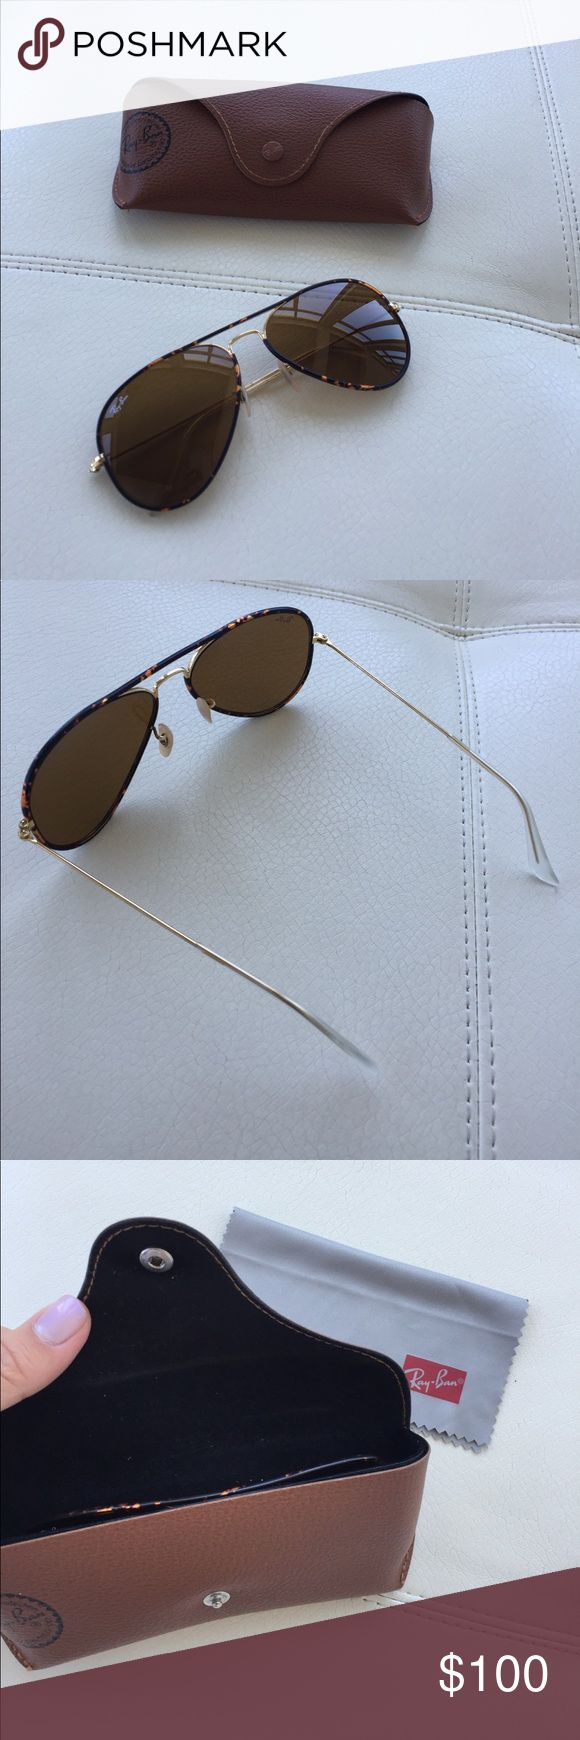 Ray-Ban tortoiseshell and gold aviator sunglasses Beautiful aviators in perfect condition. Authentic Ray-Ban only used a couple of times. Custom cleaning cloth and brown leather case included. Ray-Ban Accessories Sunglasses